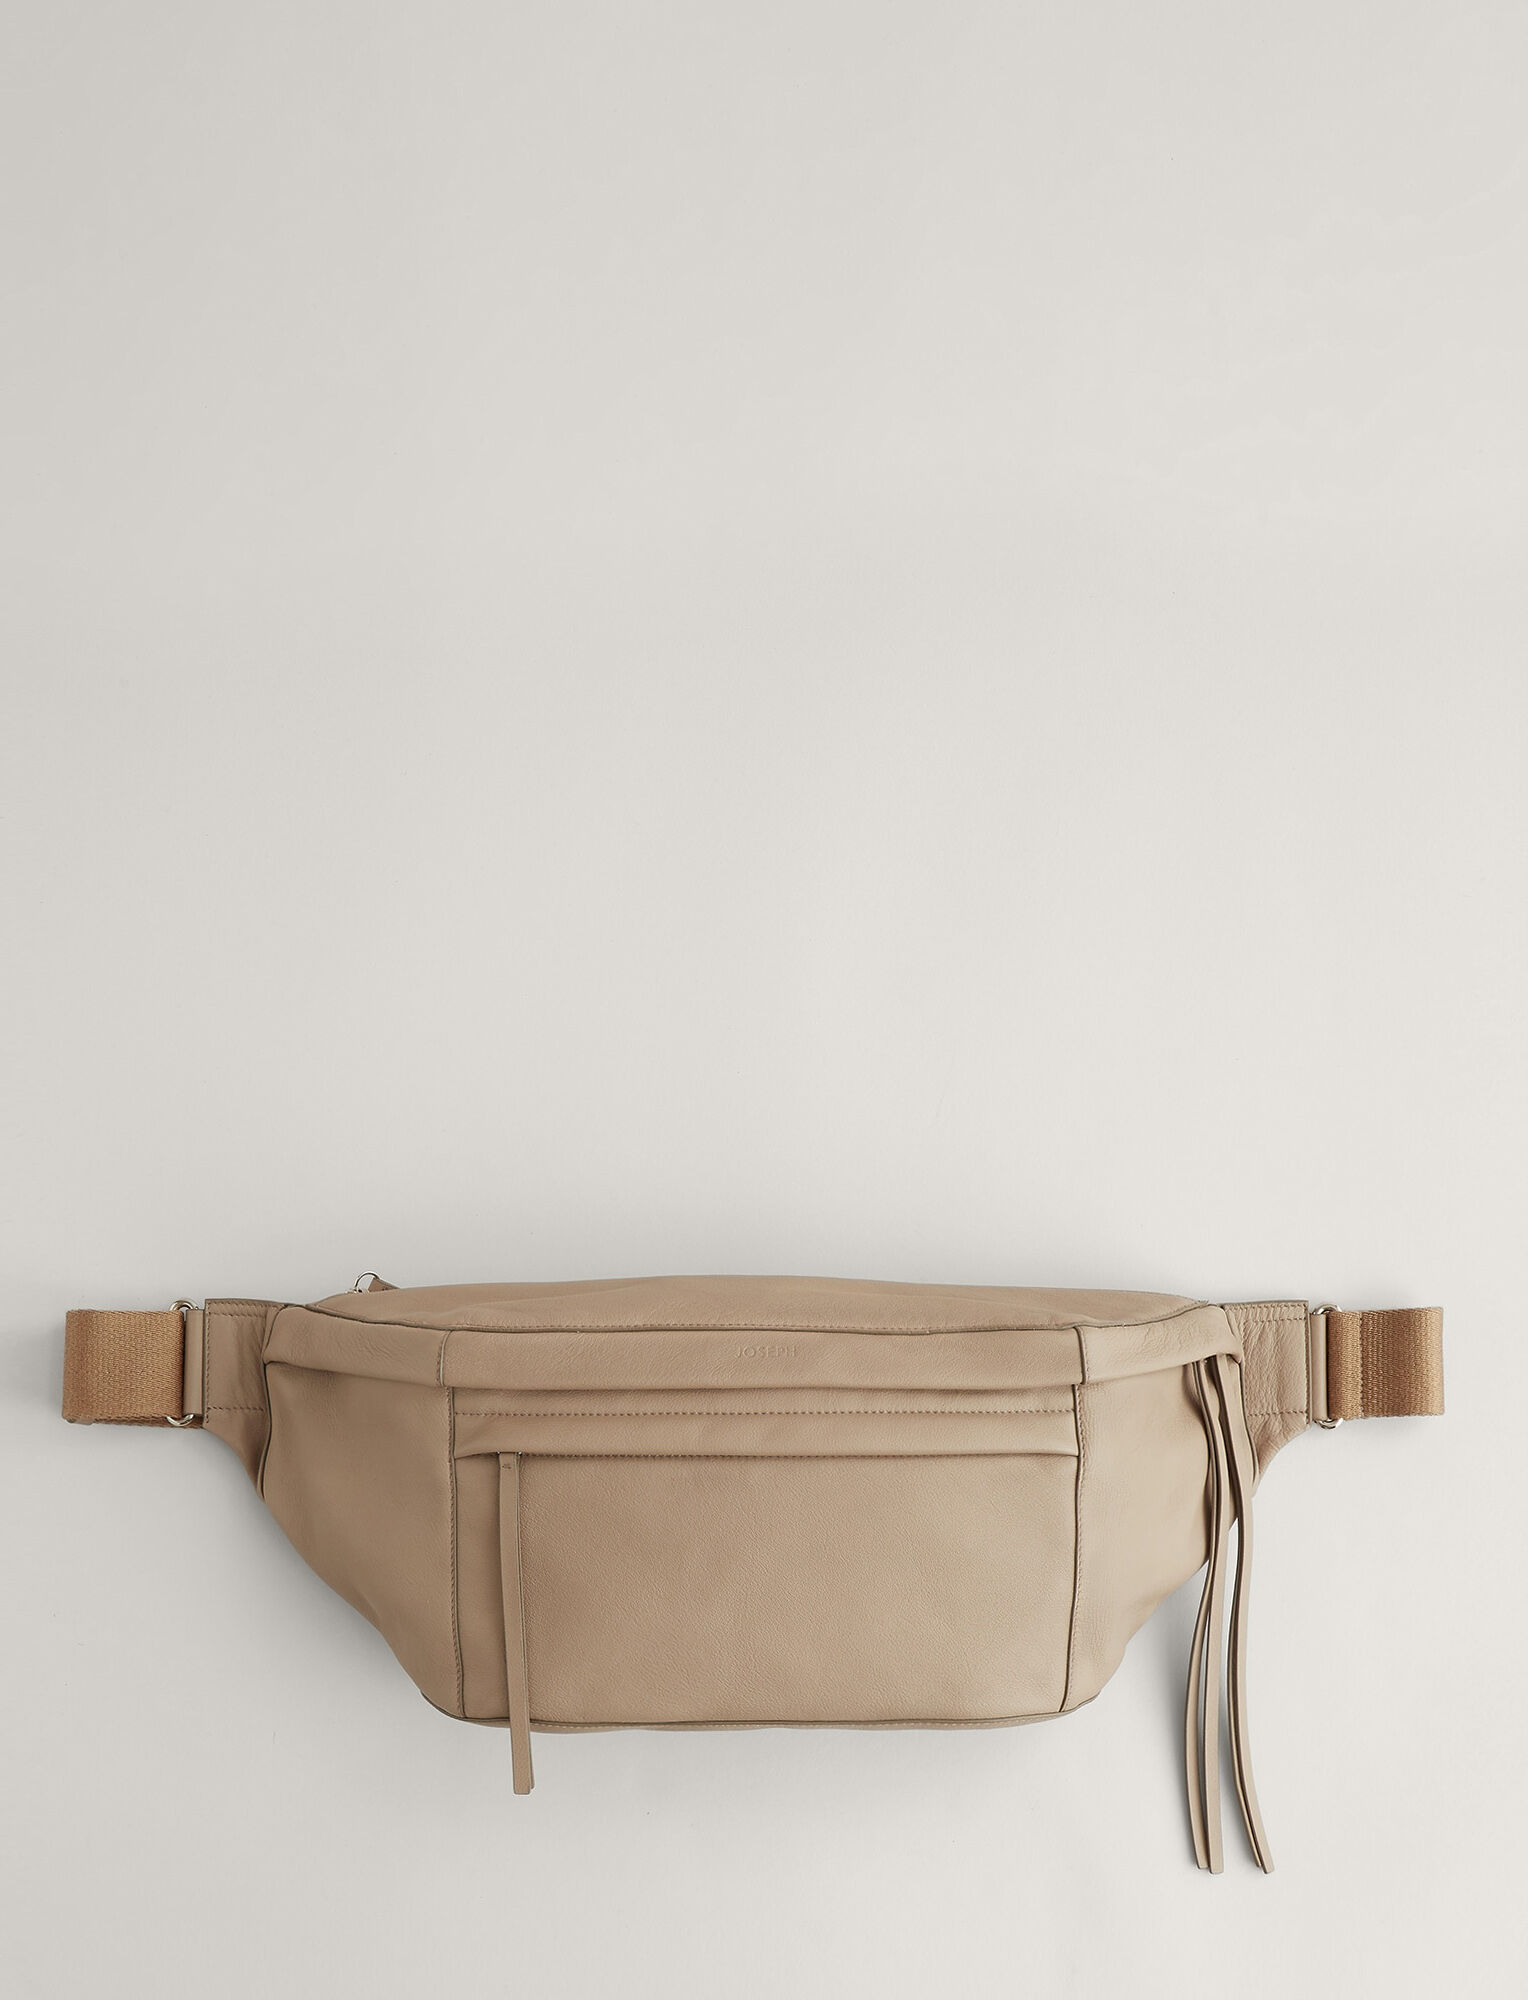 Joseph, Harley Leather Bag, in TAUPE